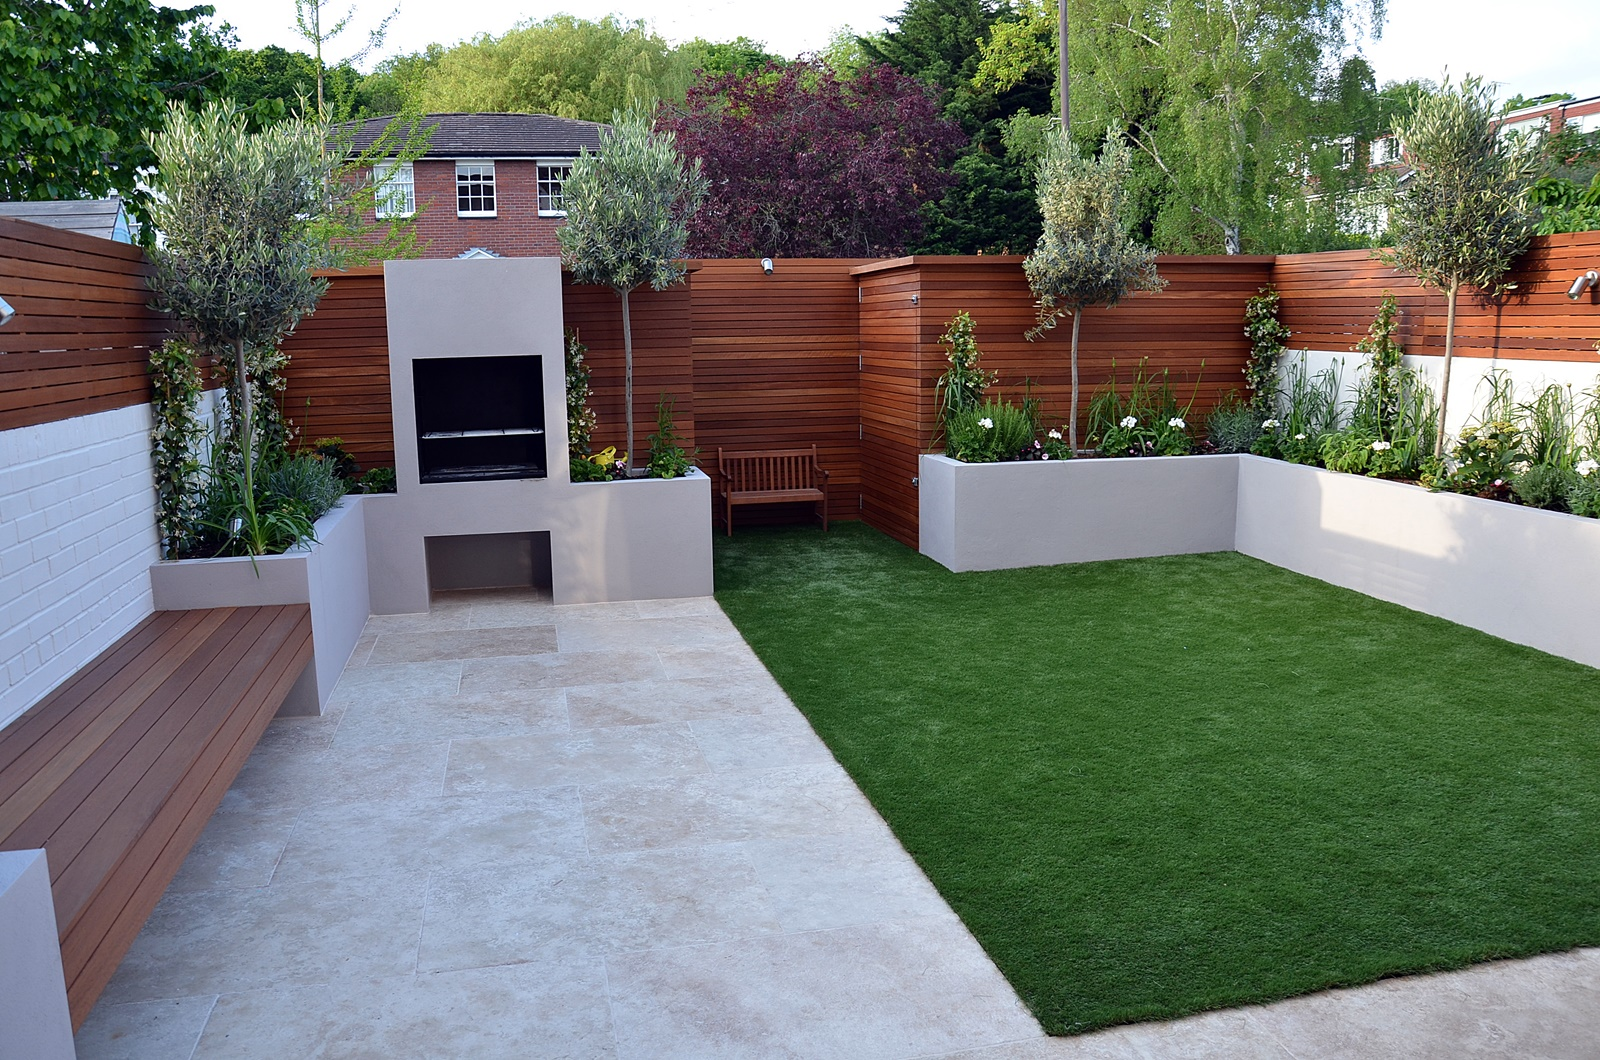 Modern garden design fulham chelsea clapham battersea for Small garden design uk